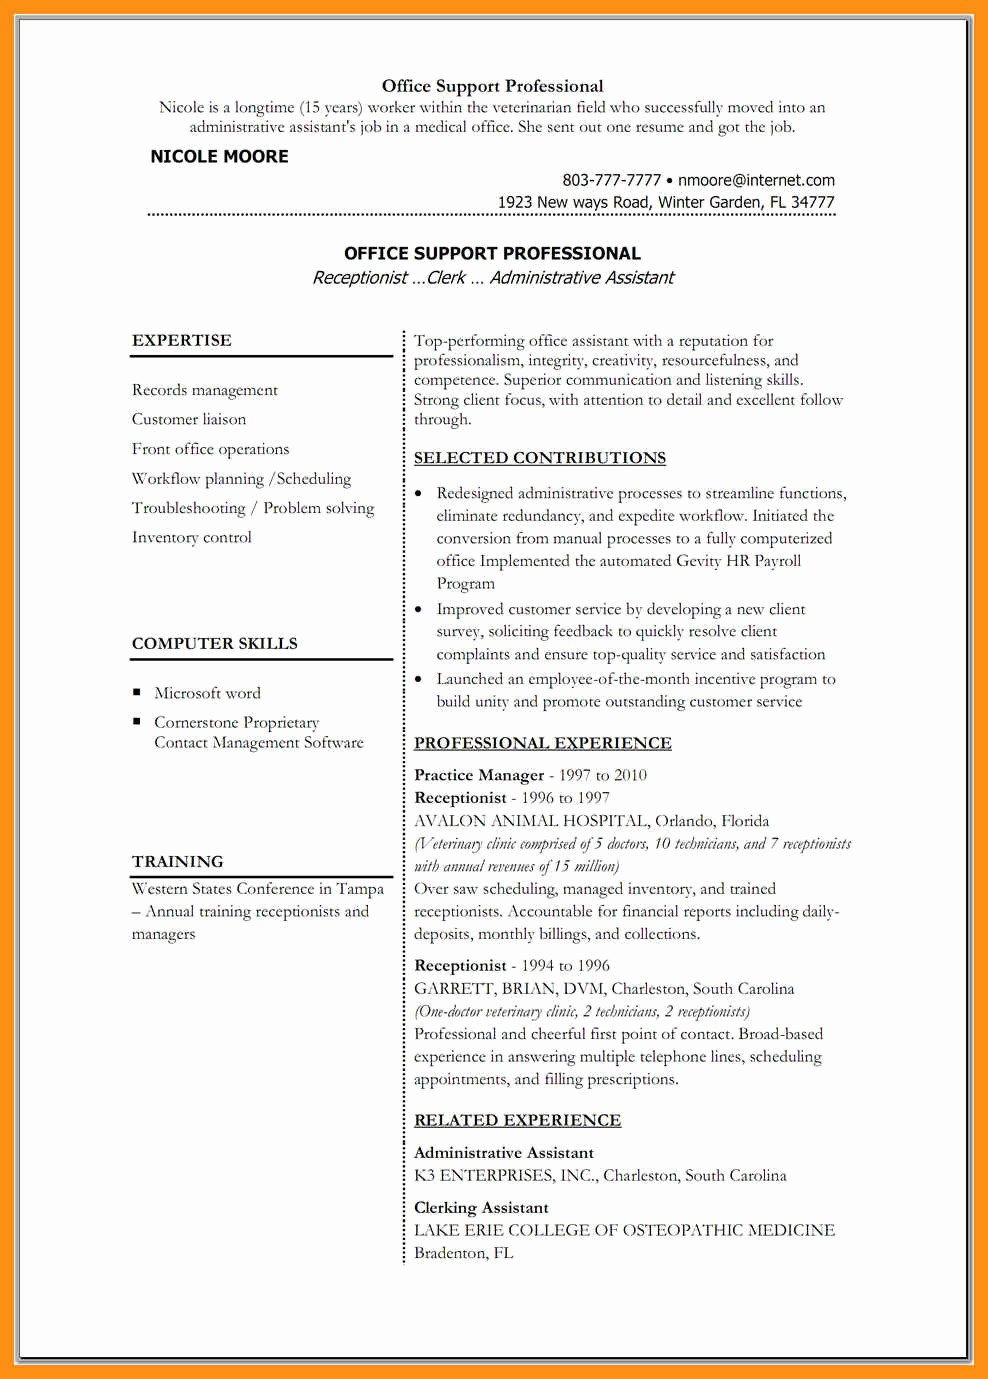 Best Ms Word Resume Template Unique Good Resume Templates for Word